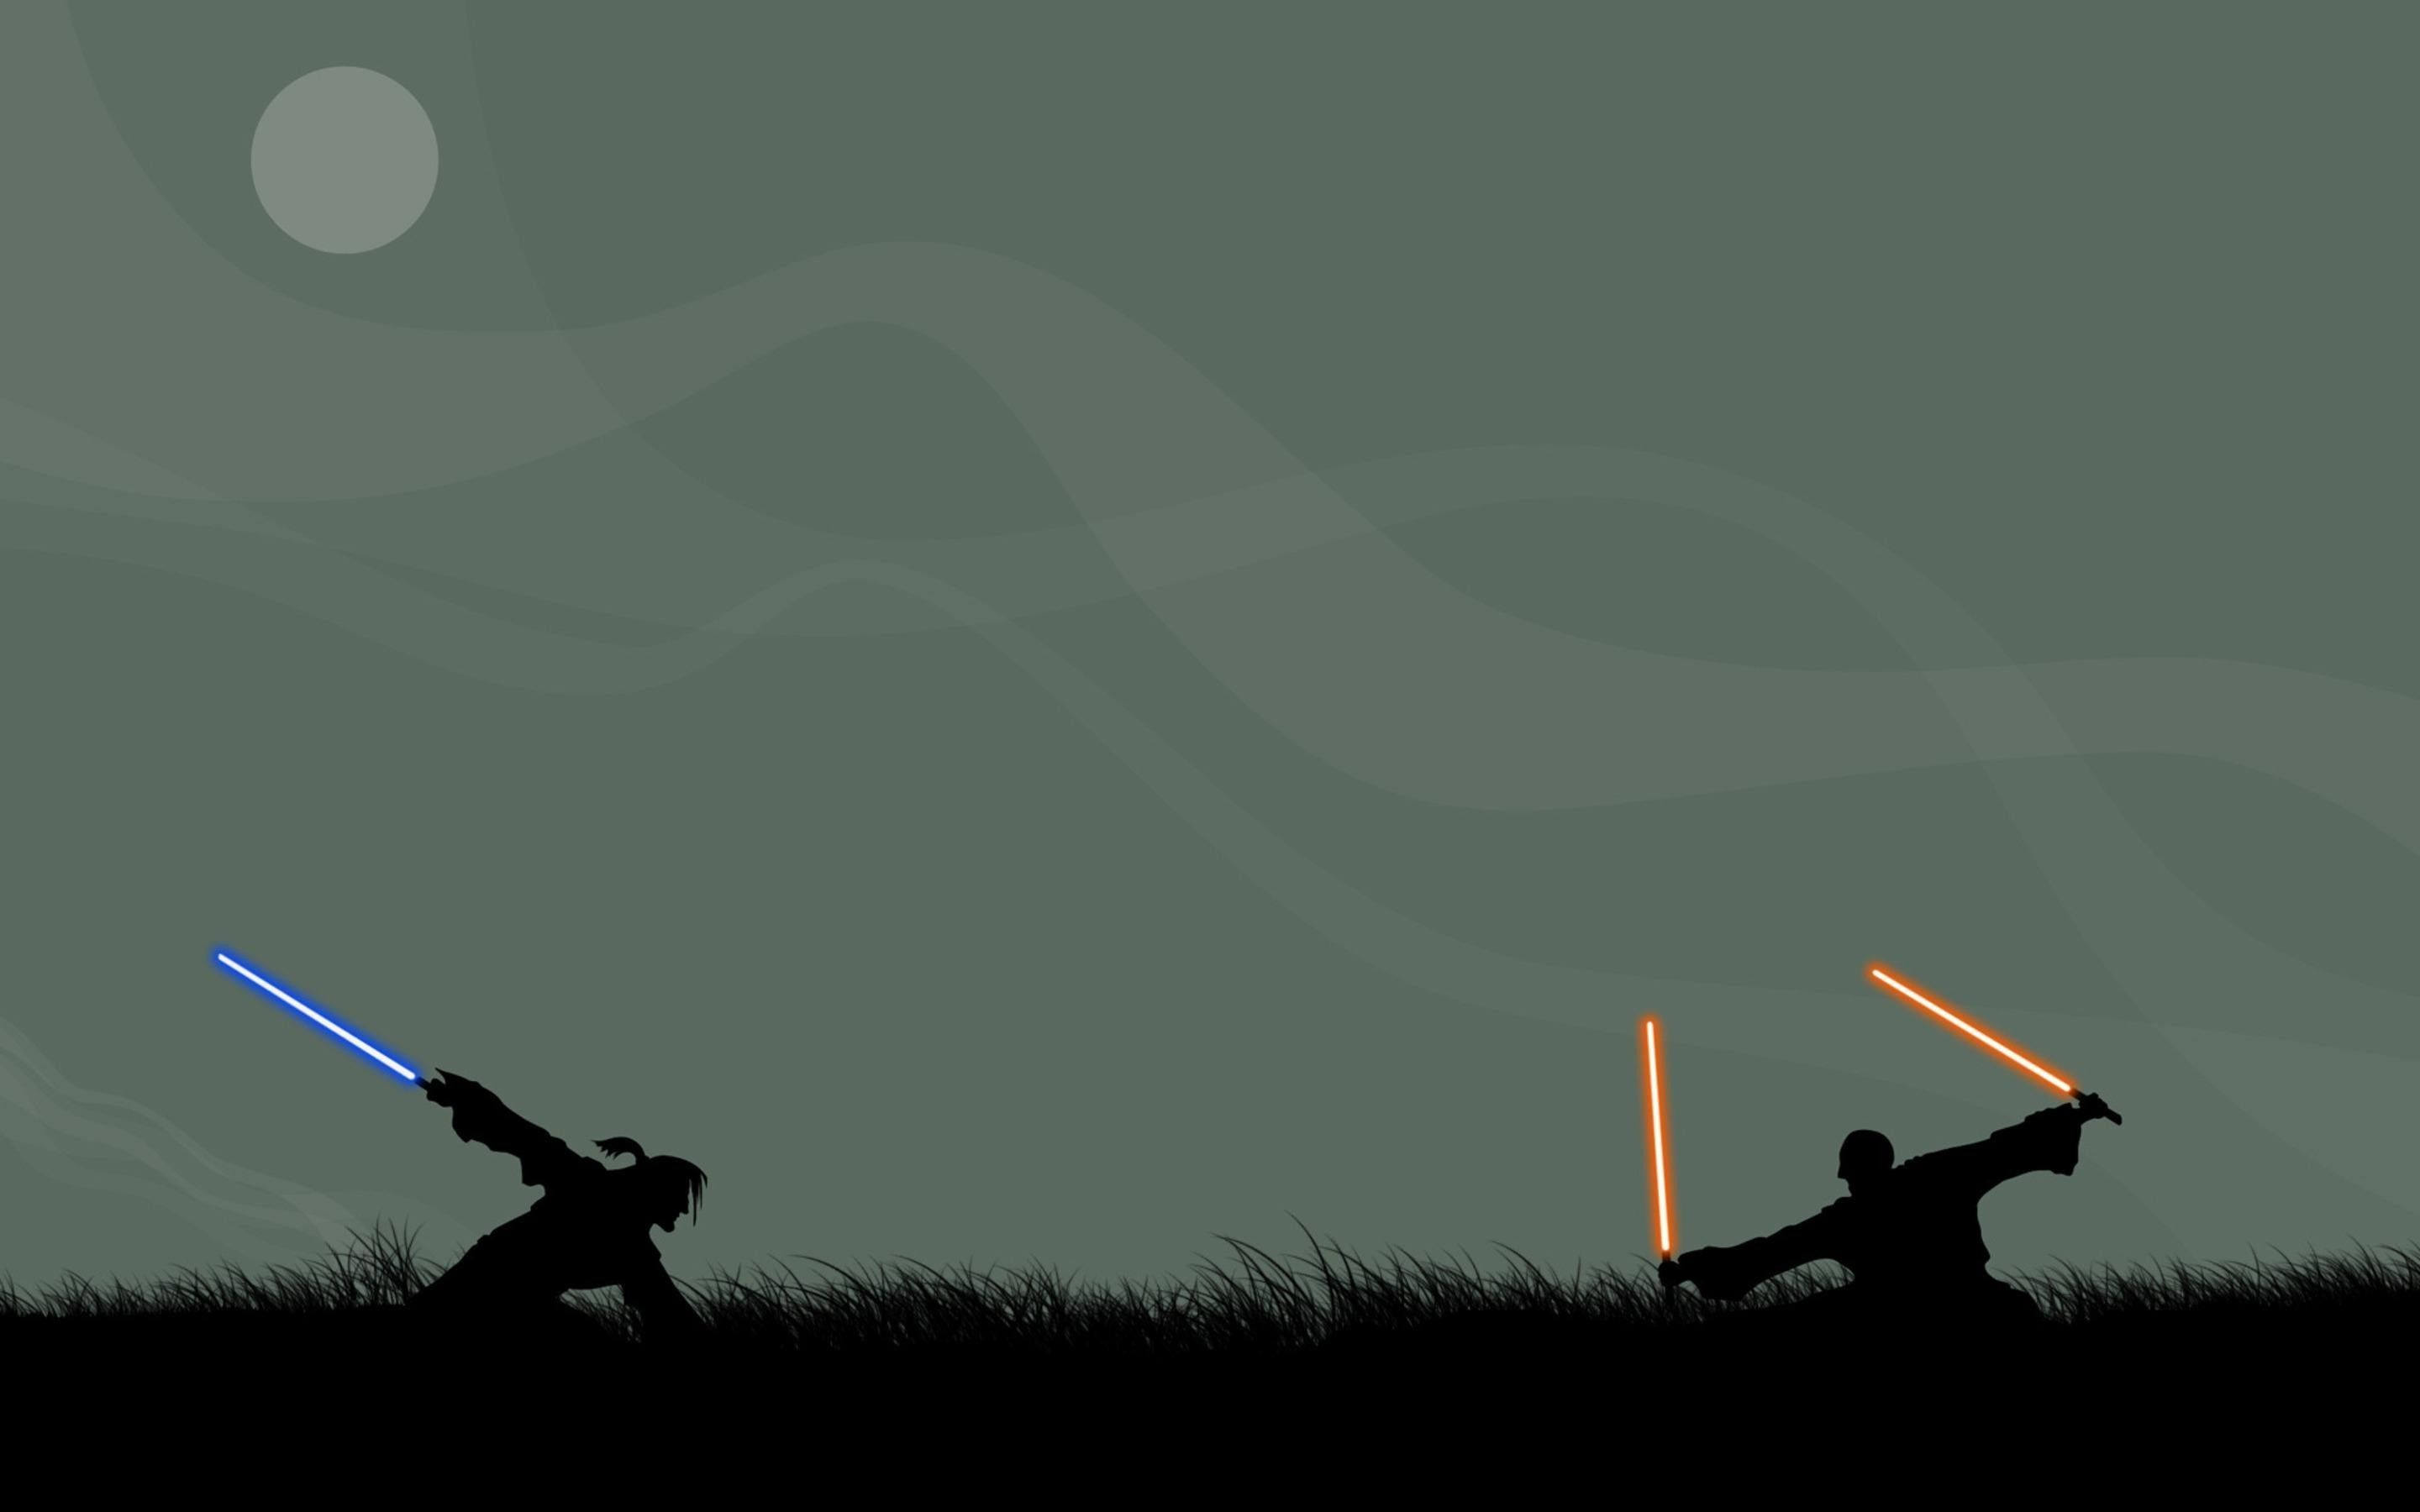 Star Wars Minimalist 2880x1800 Hd Wallpaper Star Wars Wallpaper Star Wars Awesome Star Wars Pictures